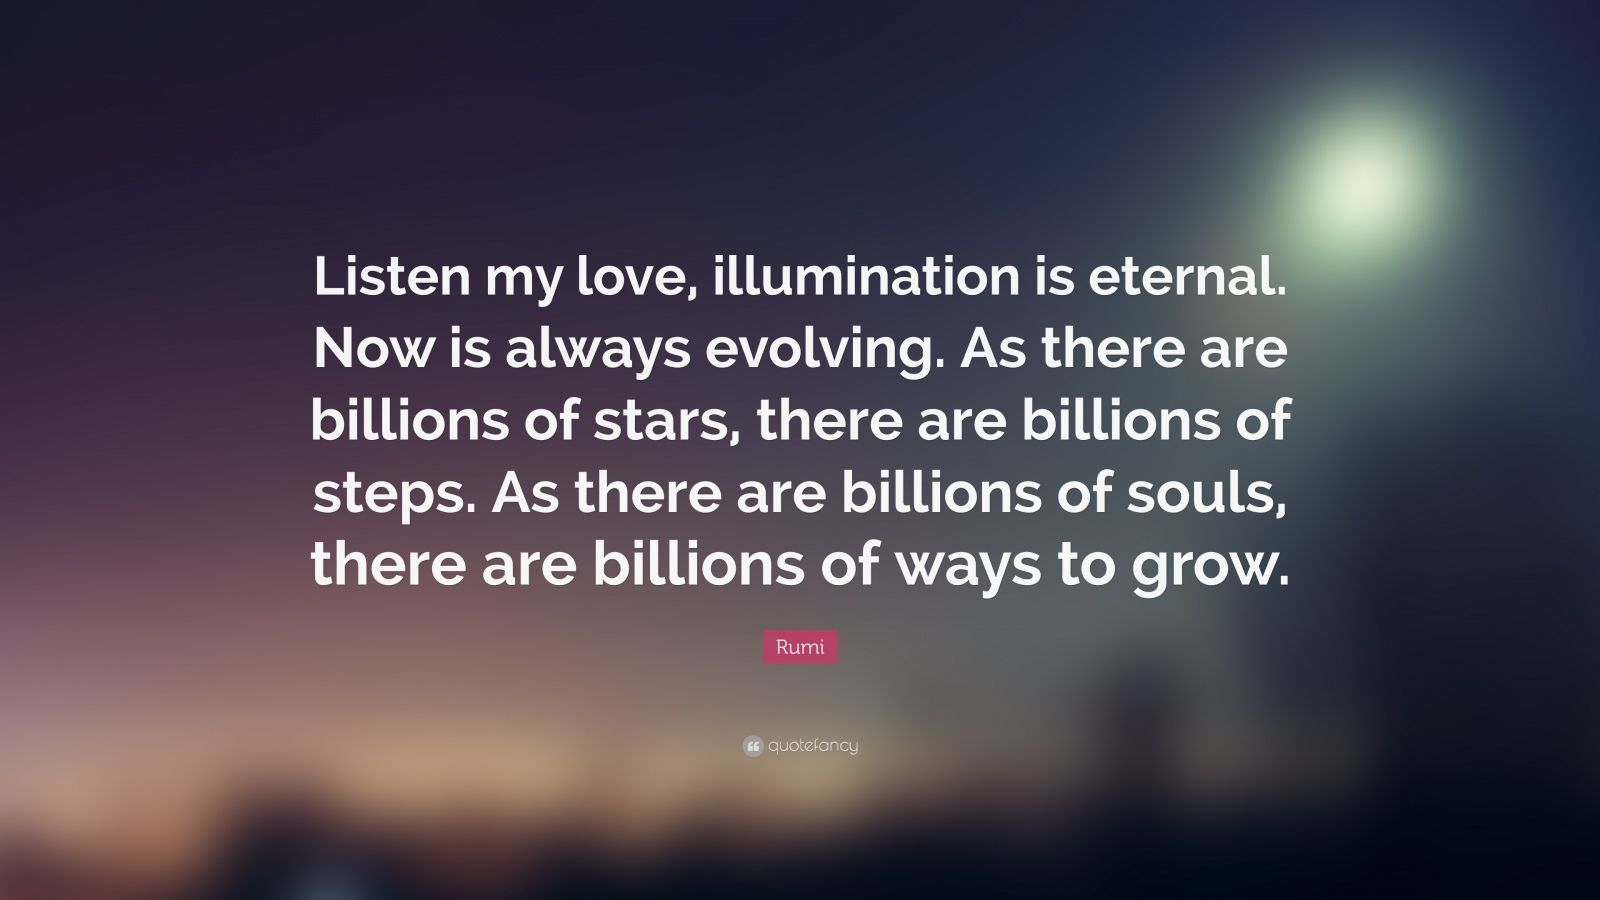 """Rumi Quote: """"Listen my love, illumination is eternal. Now is always evolving. As there are billions of stars, there are billions of steps. As there are billions of souls, there are billions of ways to grow."""""""